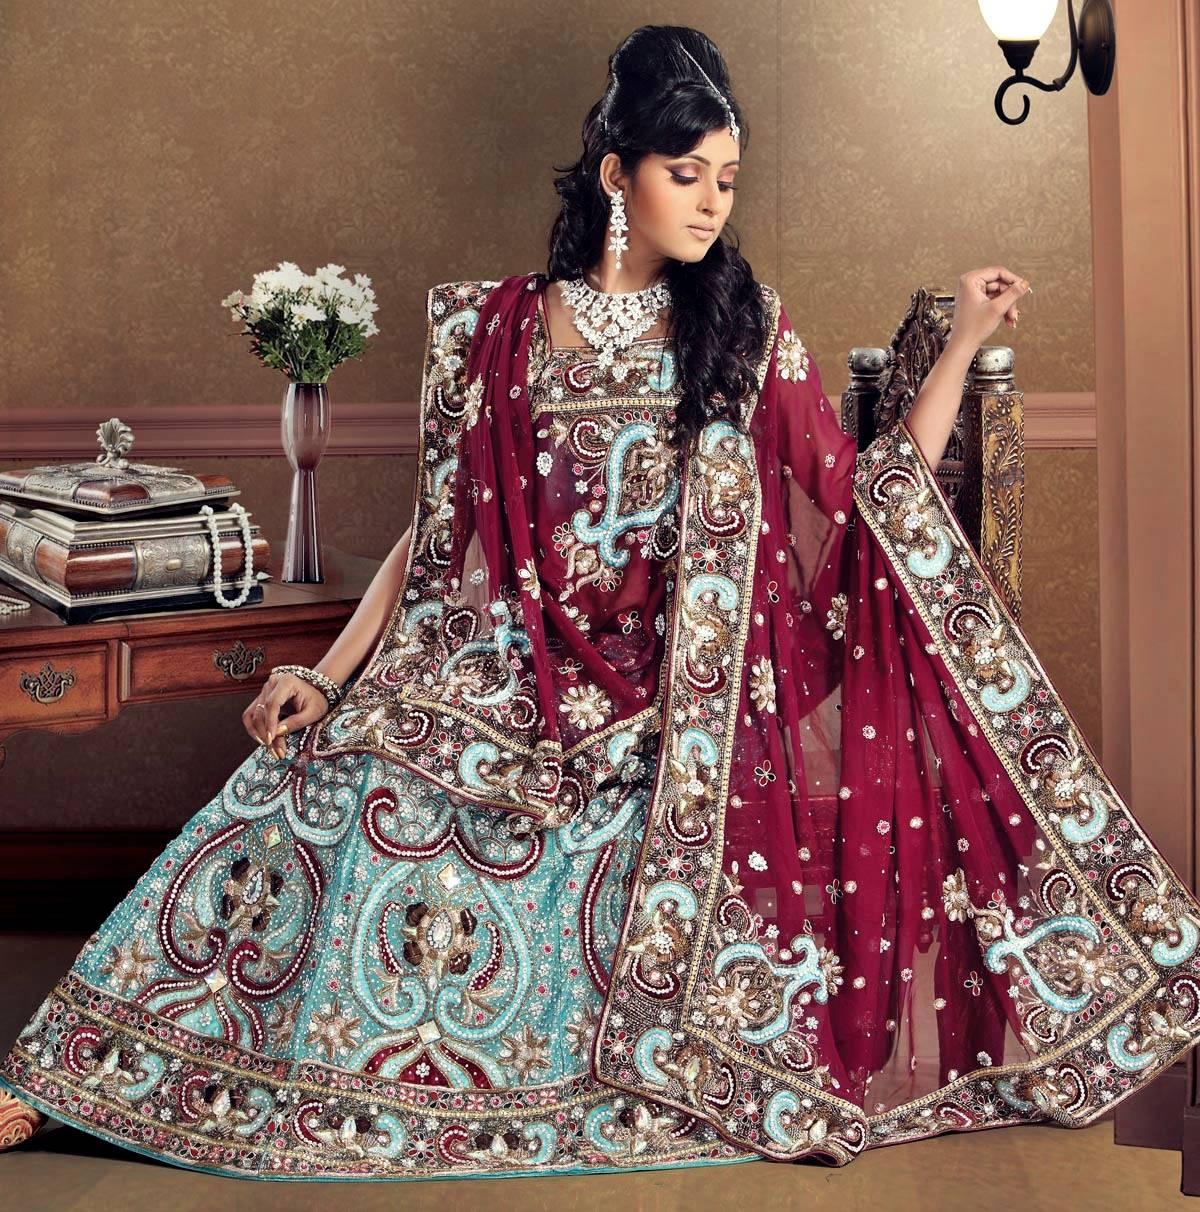 Top 50 most stunning beautiful bridal lehangas dream for Wedding dresses online in india